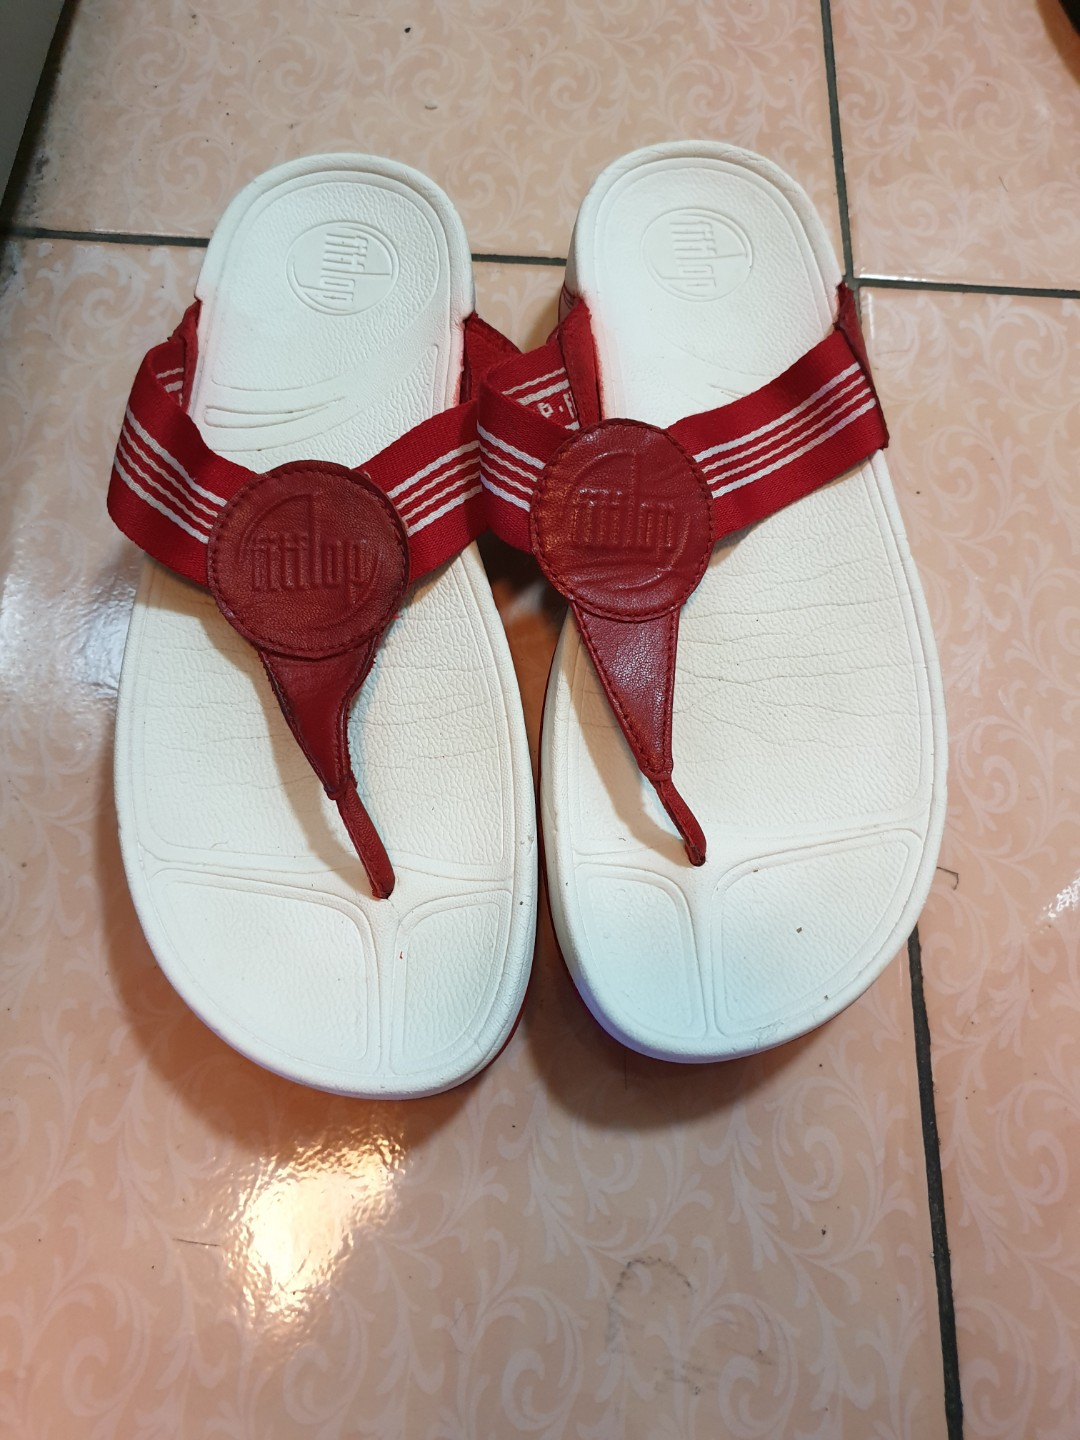 3c96090c92c Authentic Fitflops red white